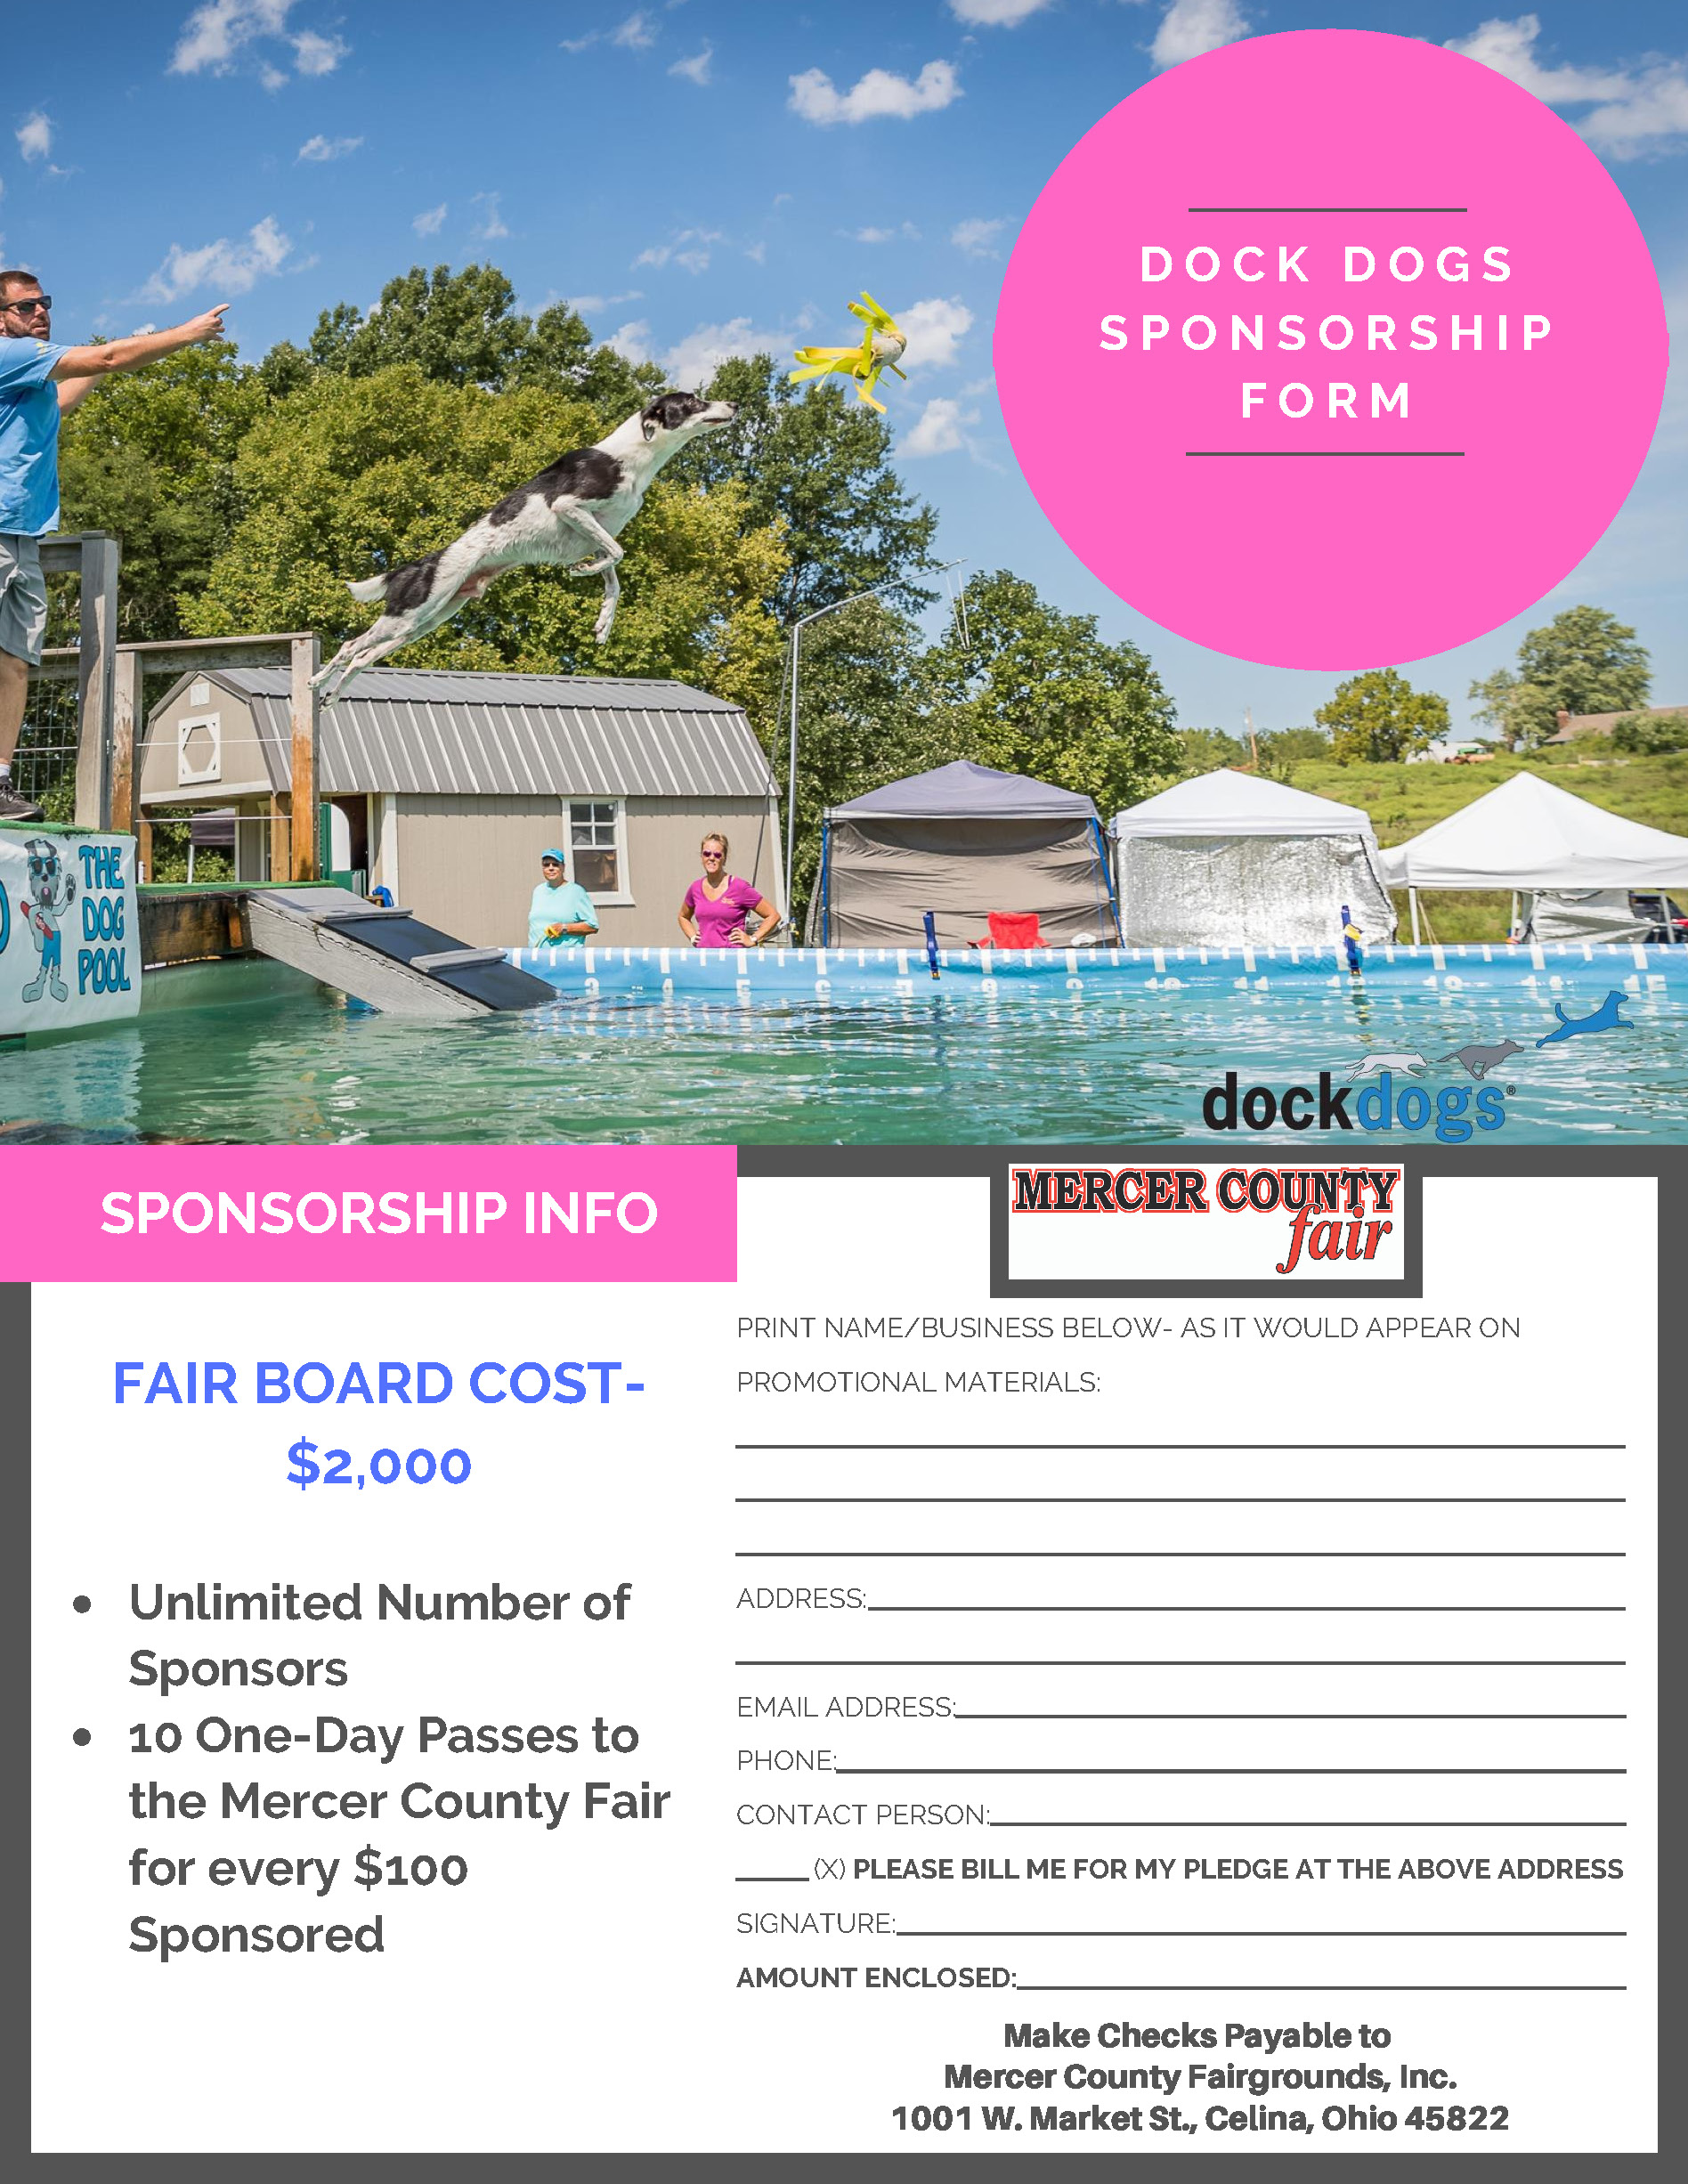 Dock Dogs Sponsorship Form